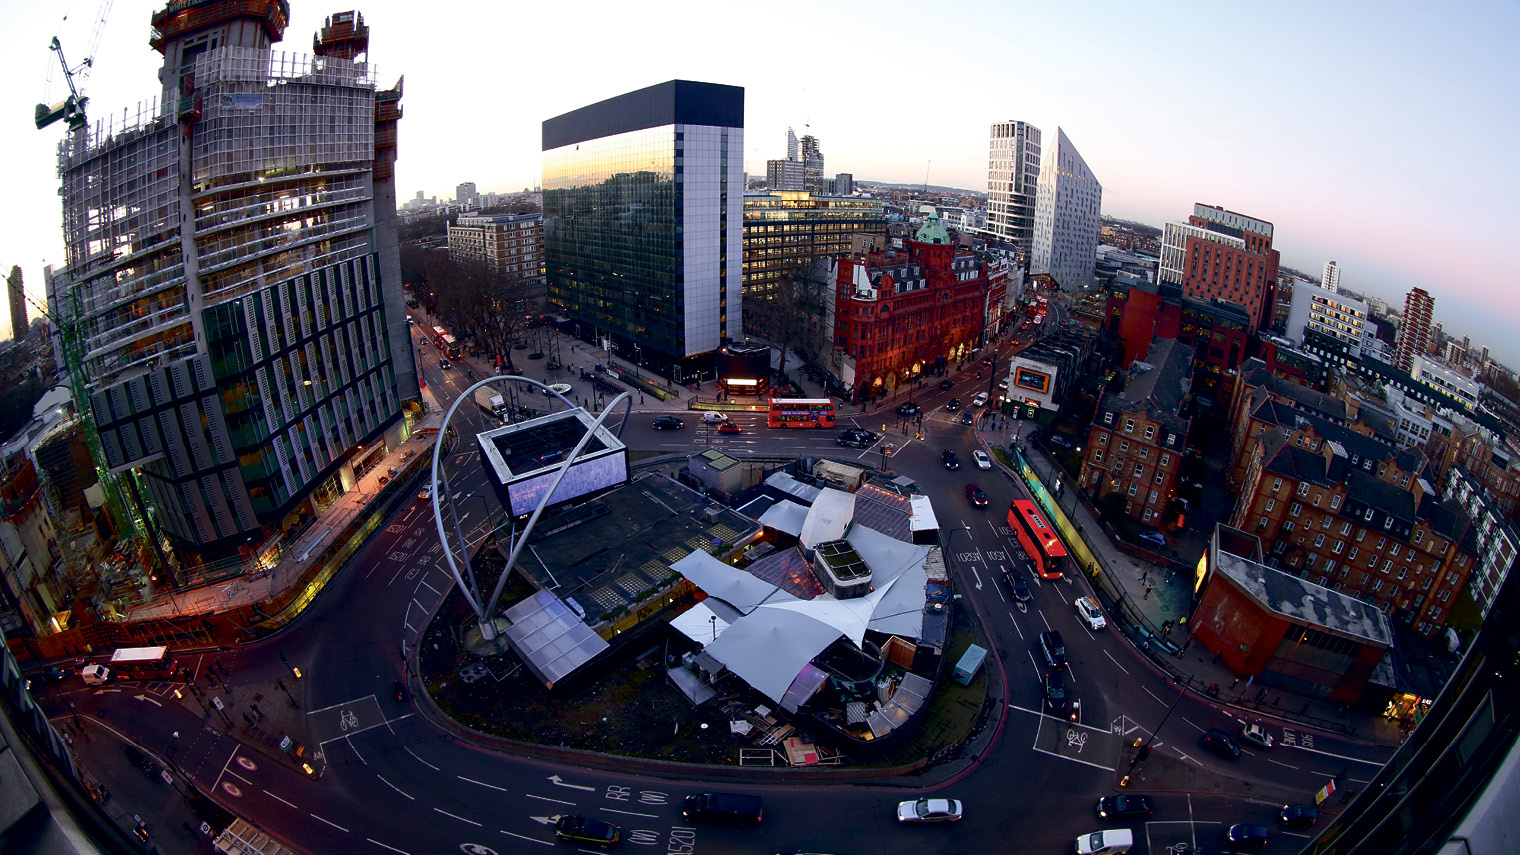 London's 'Silicon Roundabout' tech hub could struggle following the Brexit referendum